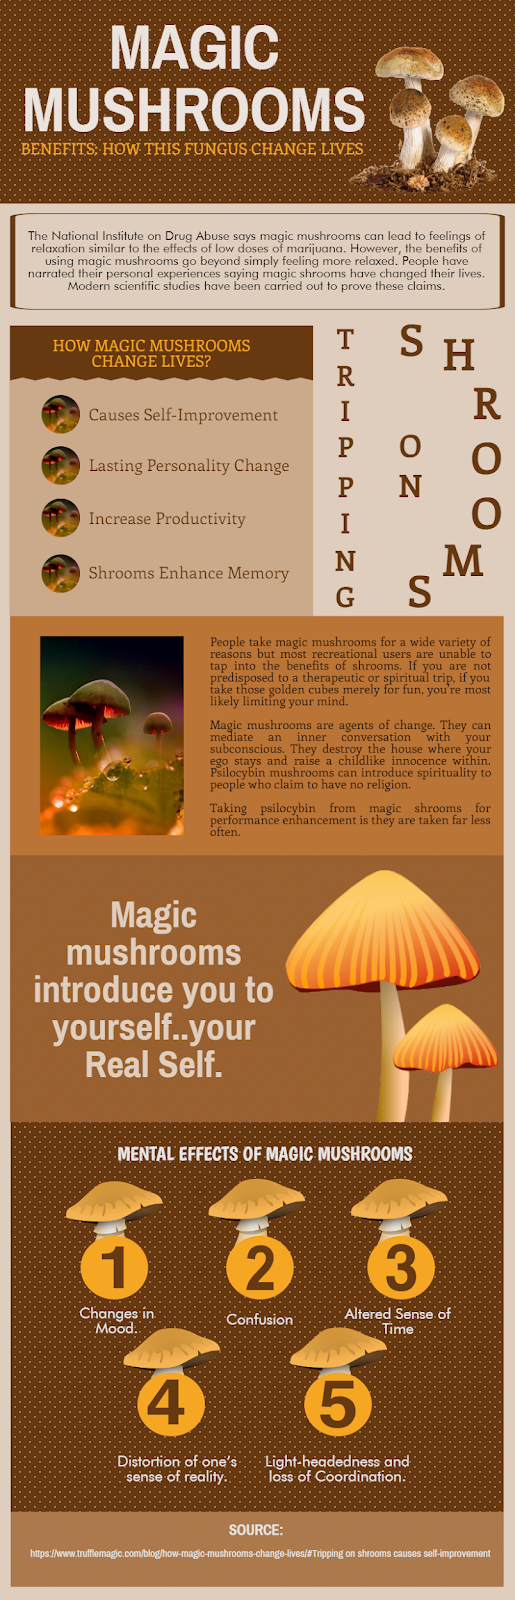 How Magic Mushrooms Changes Lives?